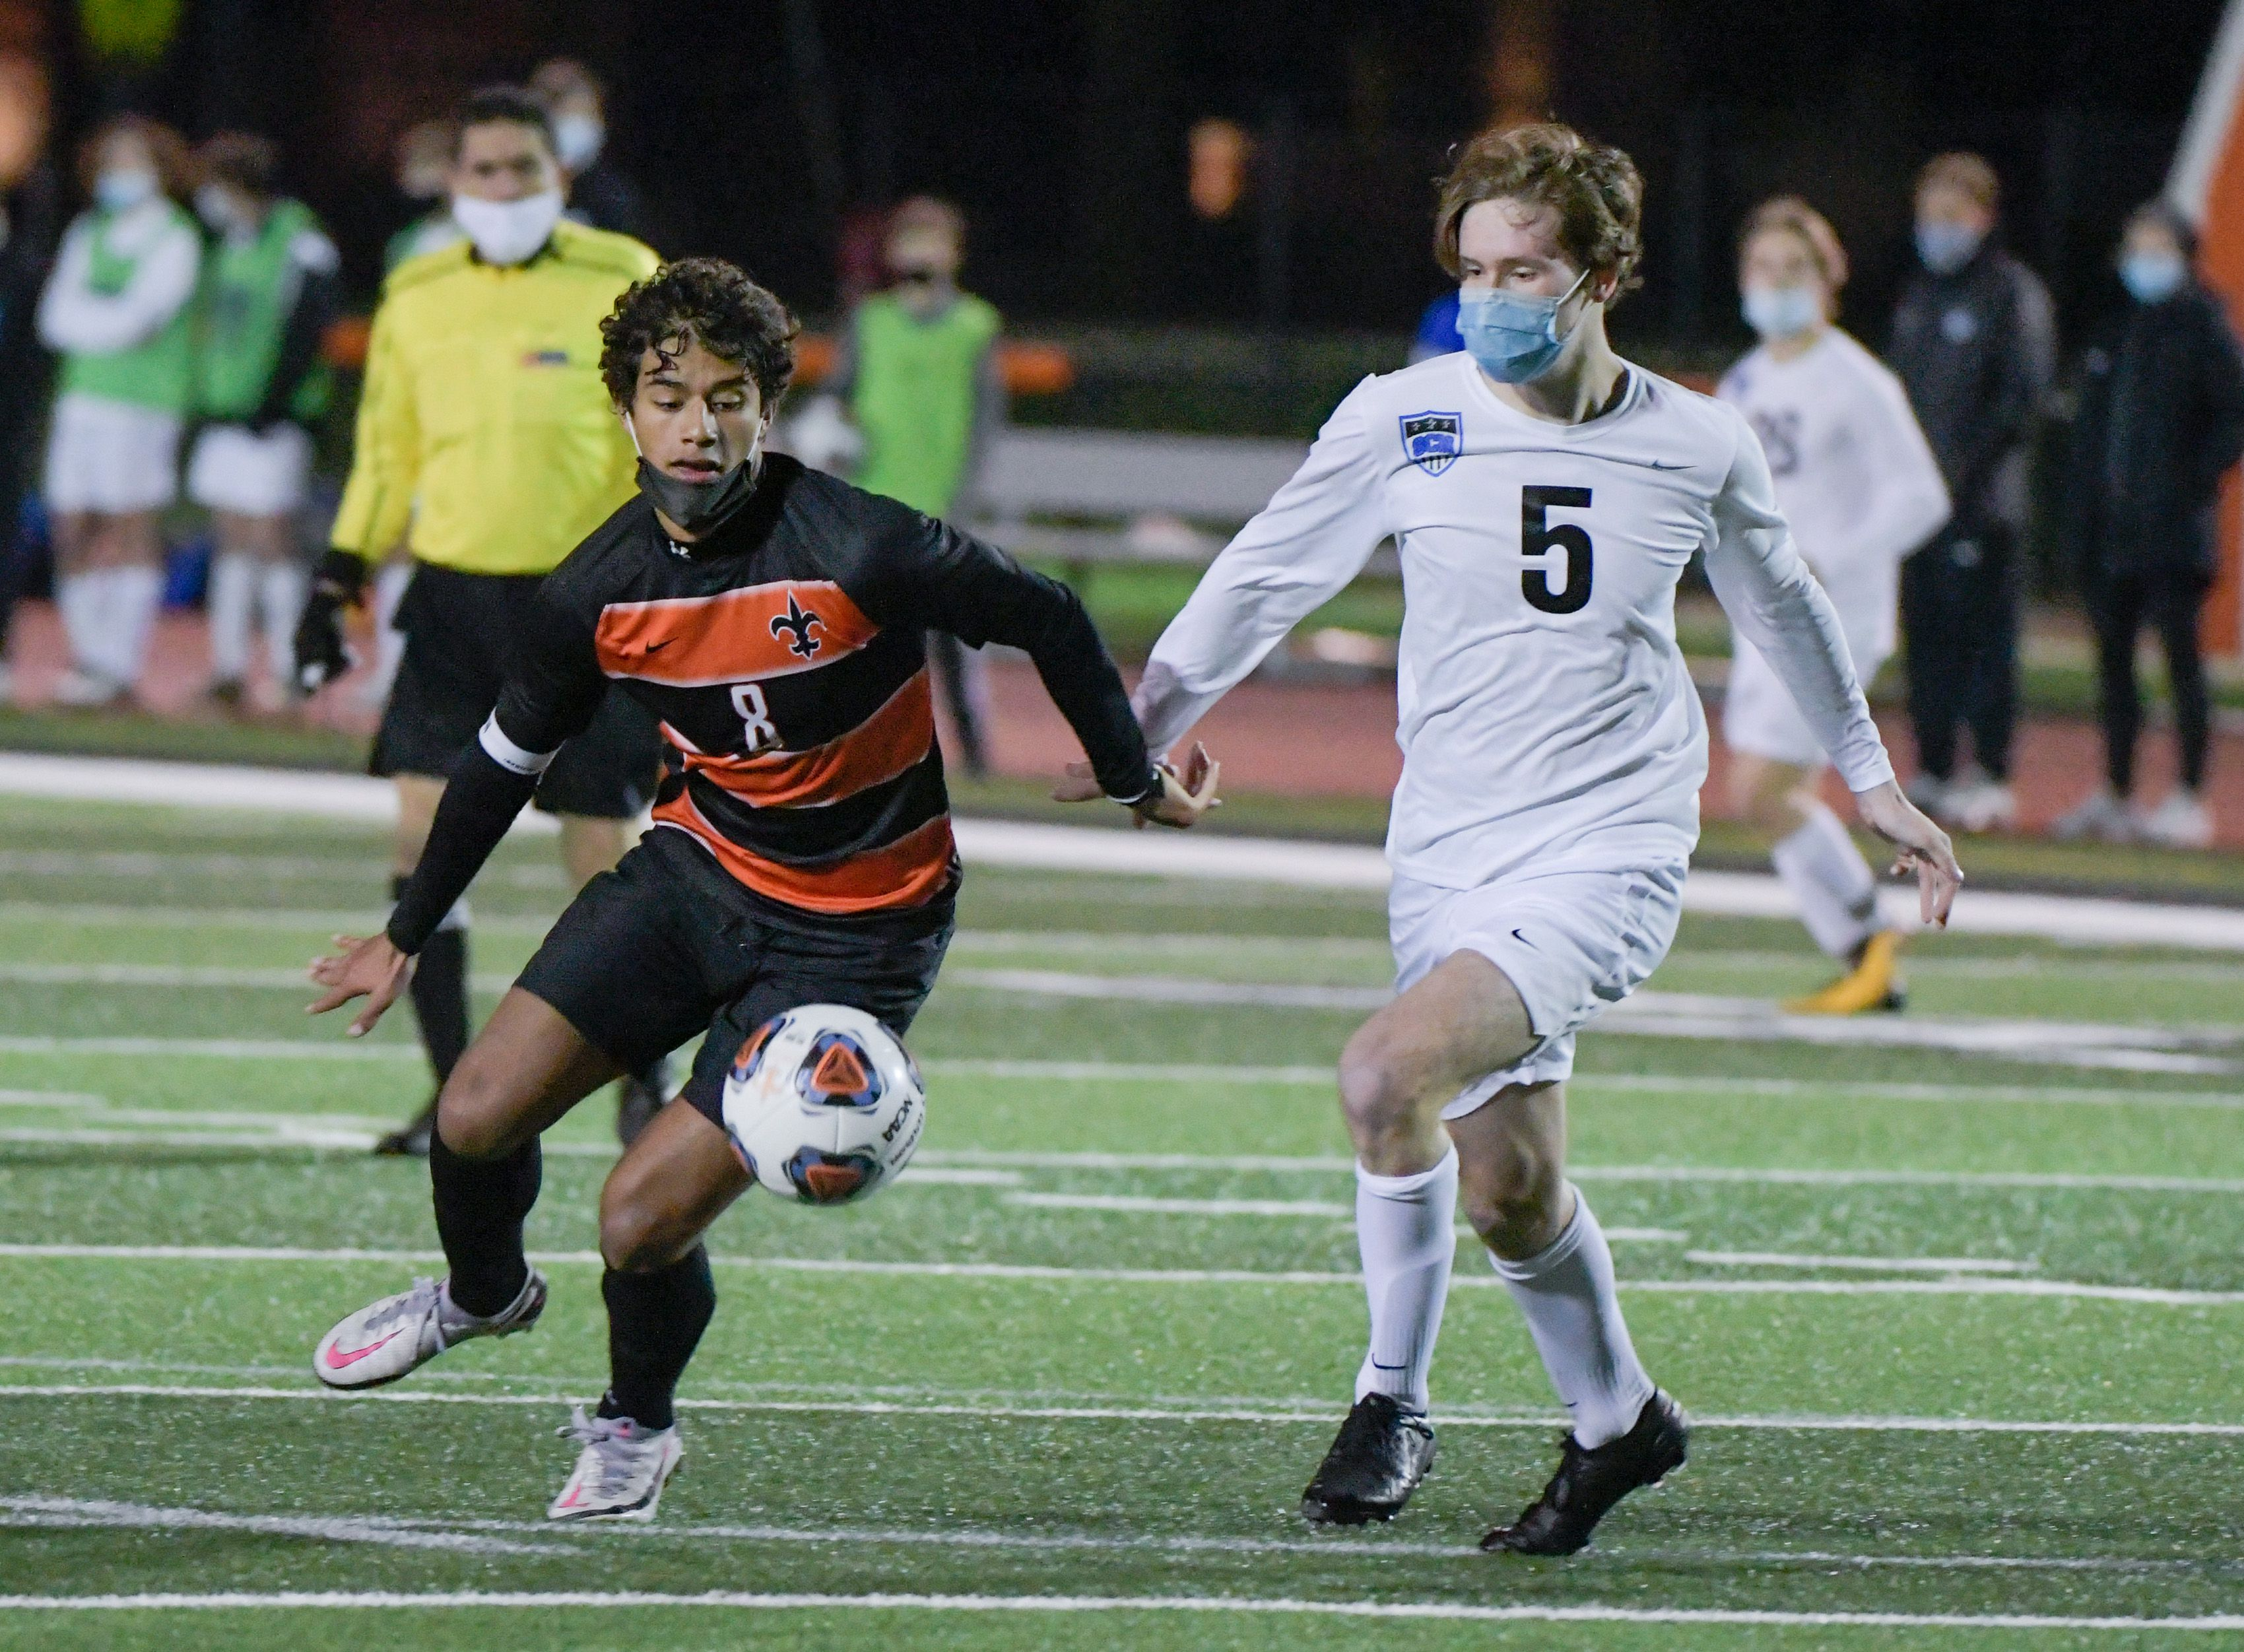 St. Charles East's Sebastian Carranza (8) and St. Charles North's Michael DePasquale (5) battle for control of the ball during the second half of varsity boys soccer in St. Charles Apr. 8.